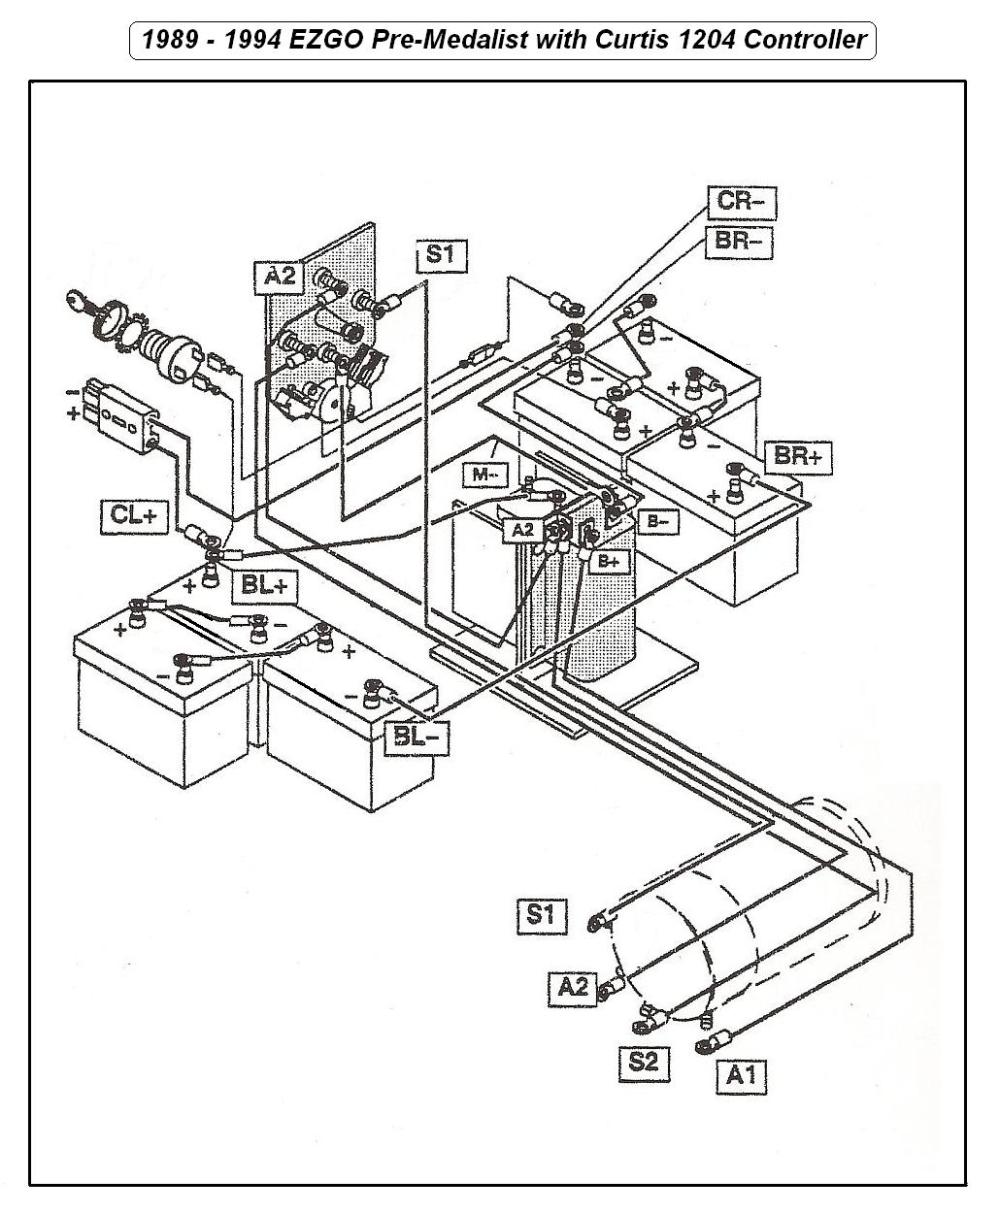 medium resolution of 1987 48 volt ezgo solenoid wiring diagram simple wiring diagrams golf cart electric diagrams pdf 48